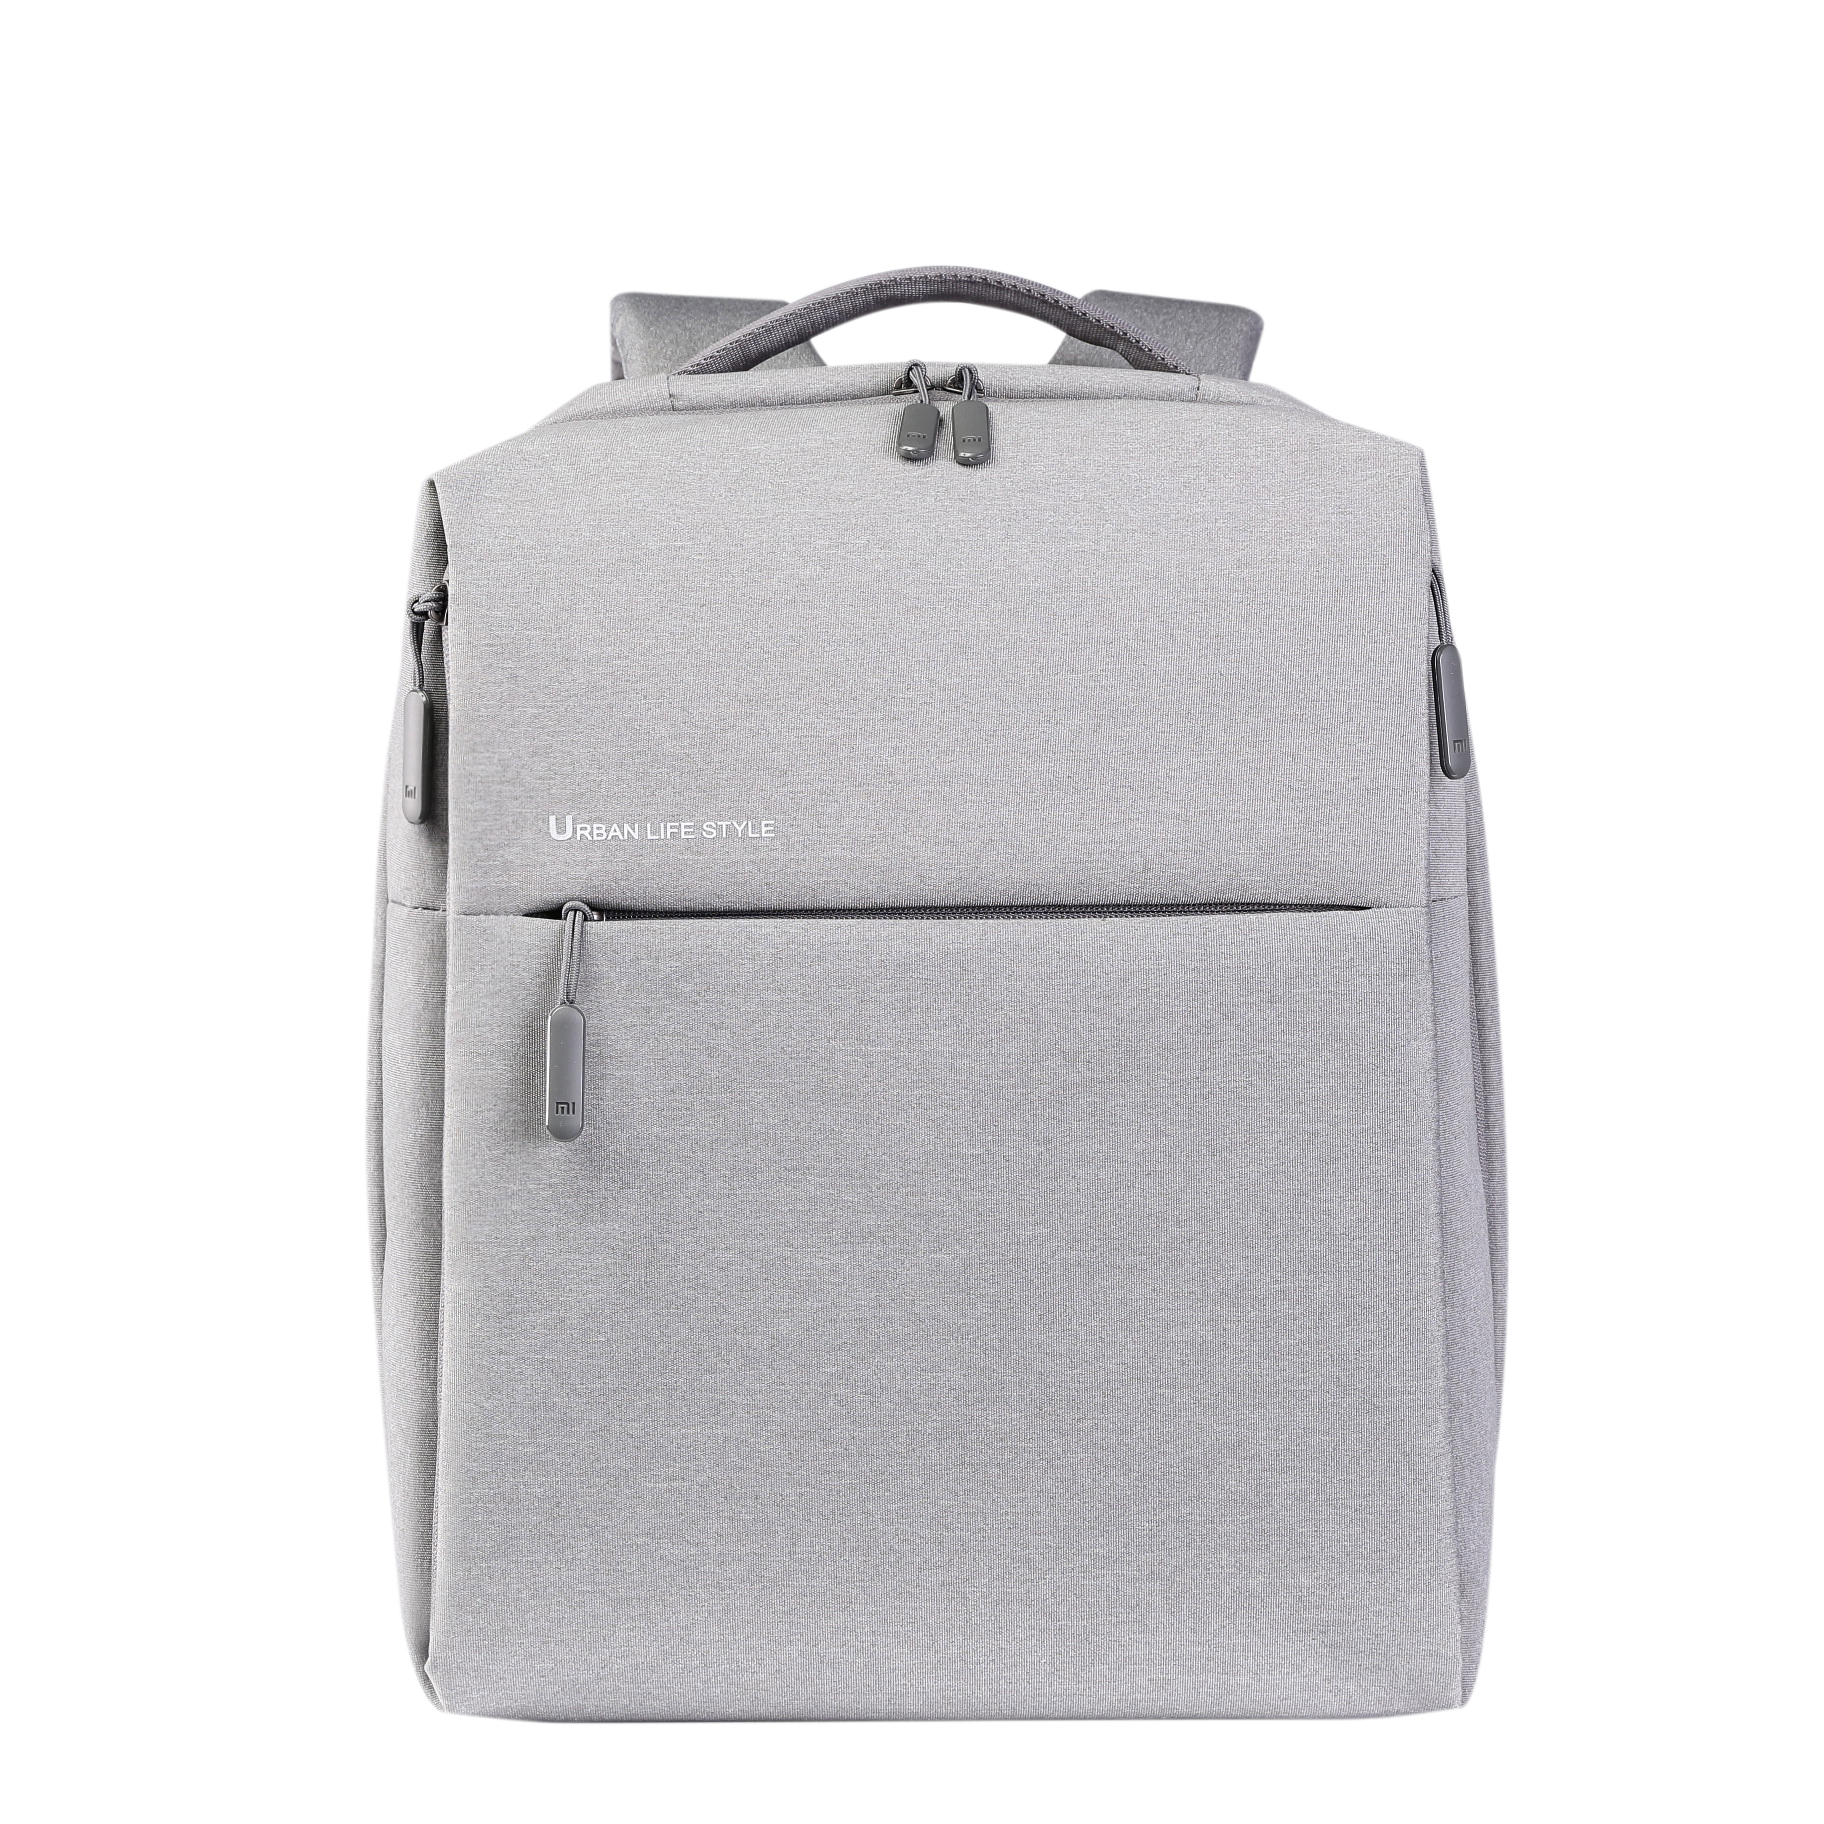 Xiaomi Mi City Backpack Bag Light Grey